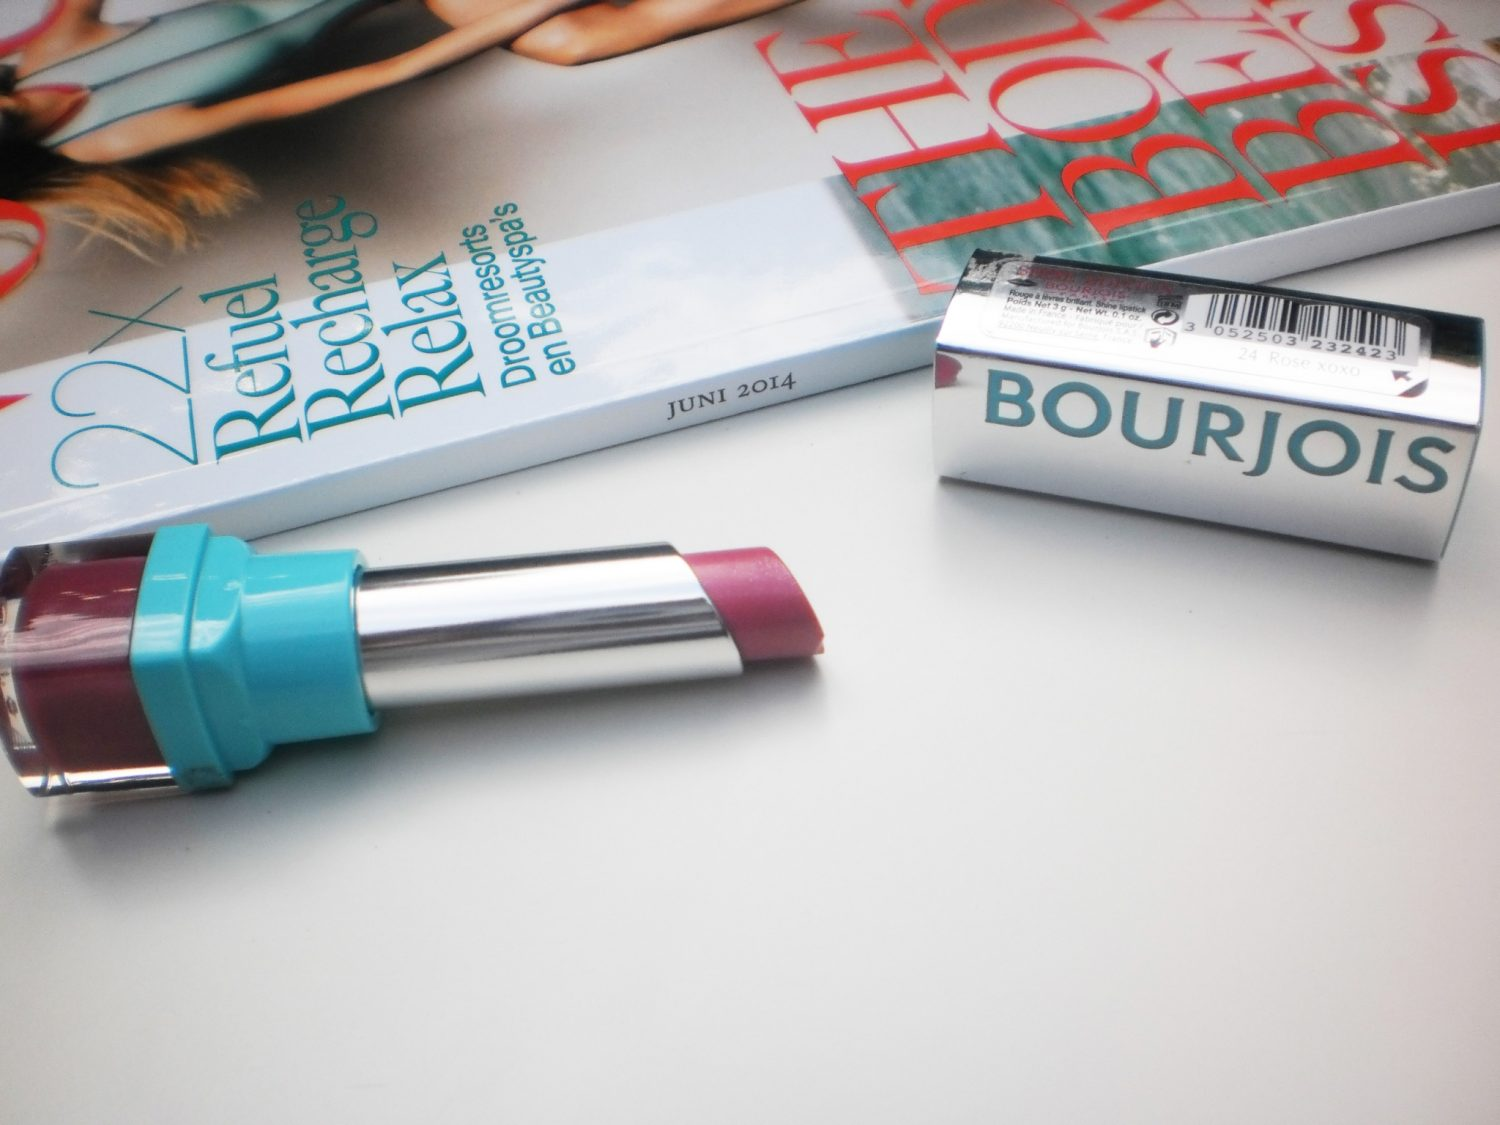 Review: Bourjois Shine Edition Lipstick #24 Rose xoxo